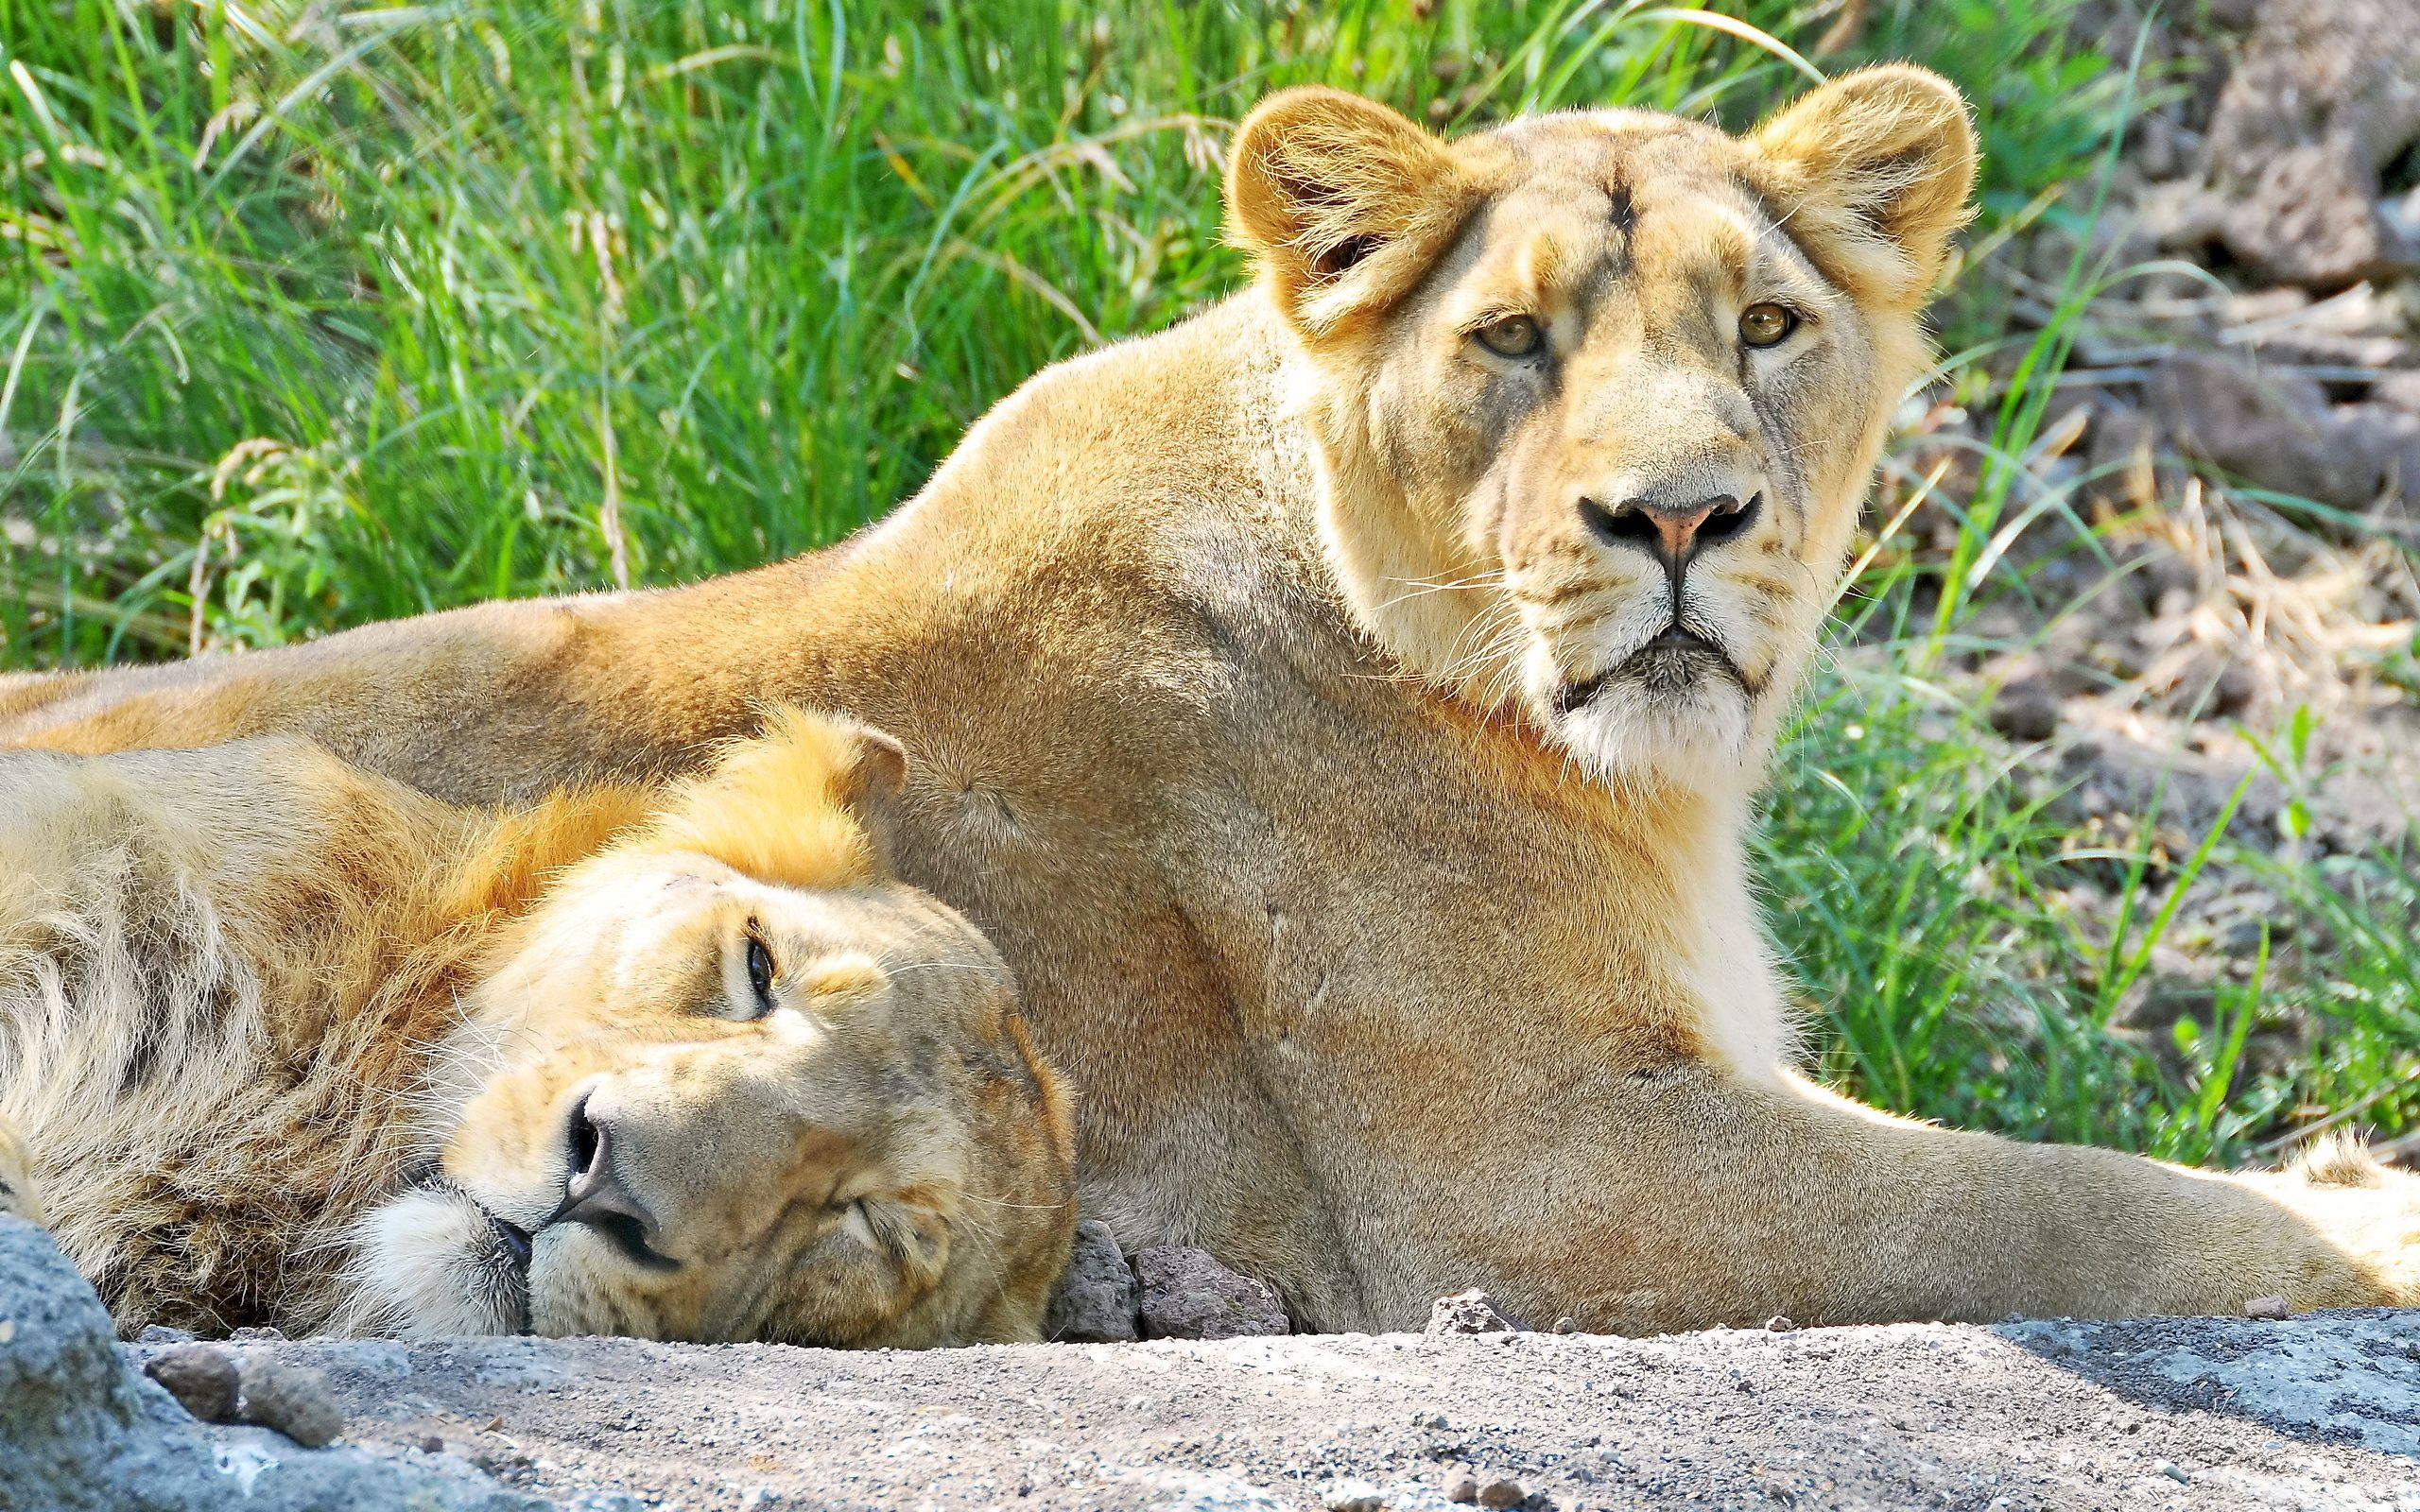 58582 download wallpaper Animals, Couple, Pair, Sleep, Dream, Predators, To Lie Down, Lie, Rock, Stone, Lions screensavers and pictures for free